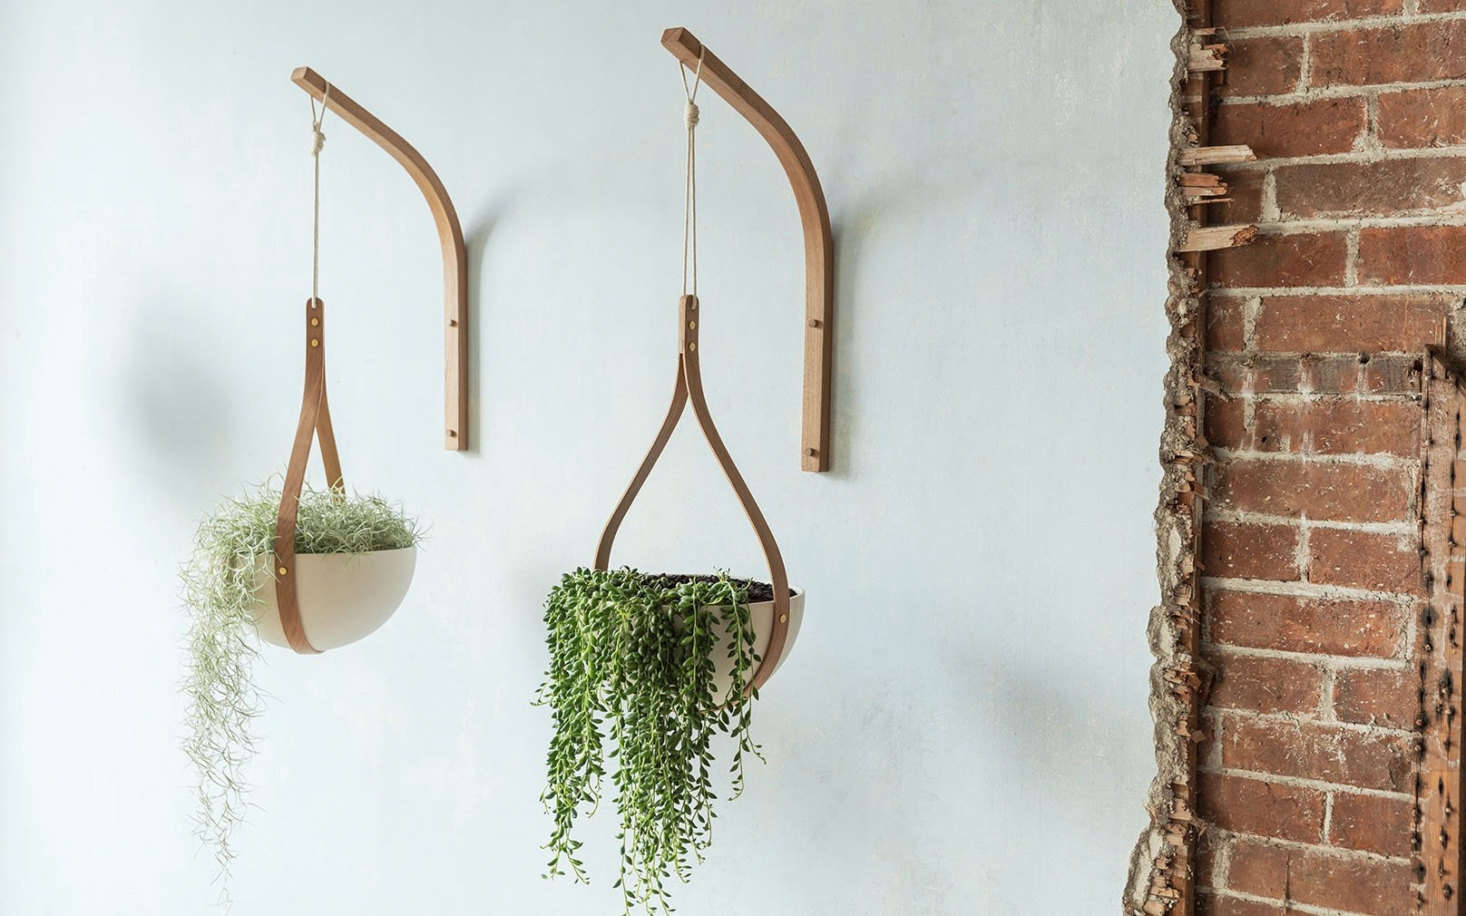 His Morvah Wall Hanging Planters are fabricated from sustainably sourced oak; £5.